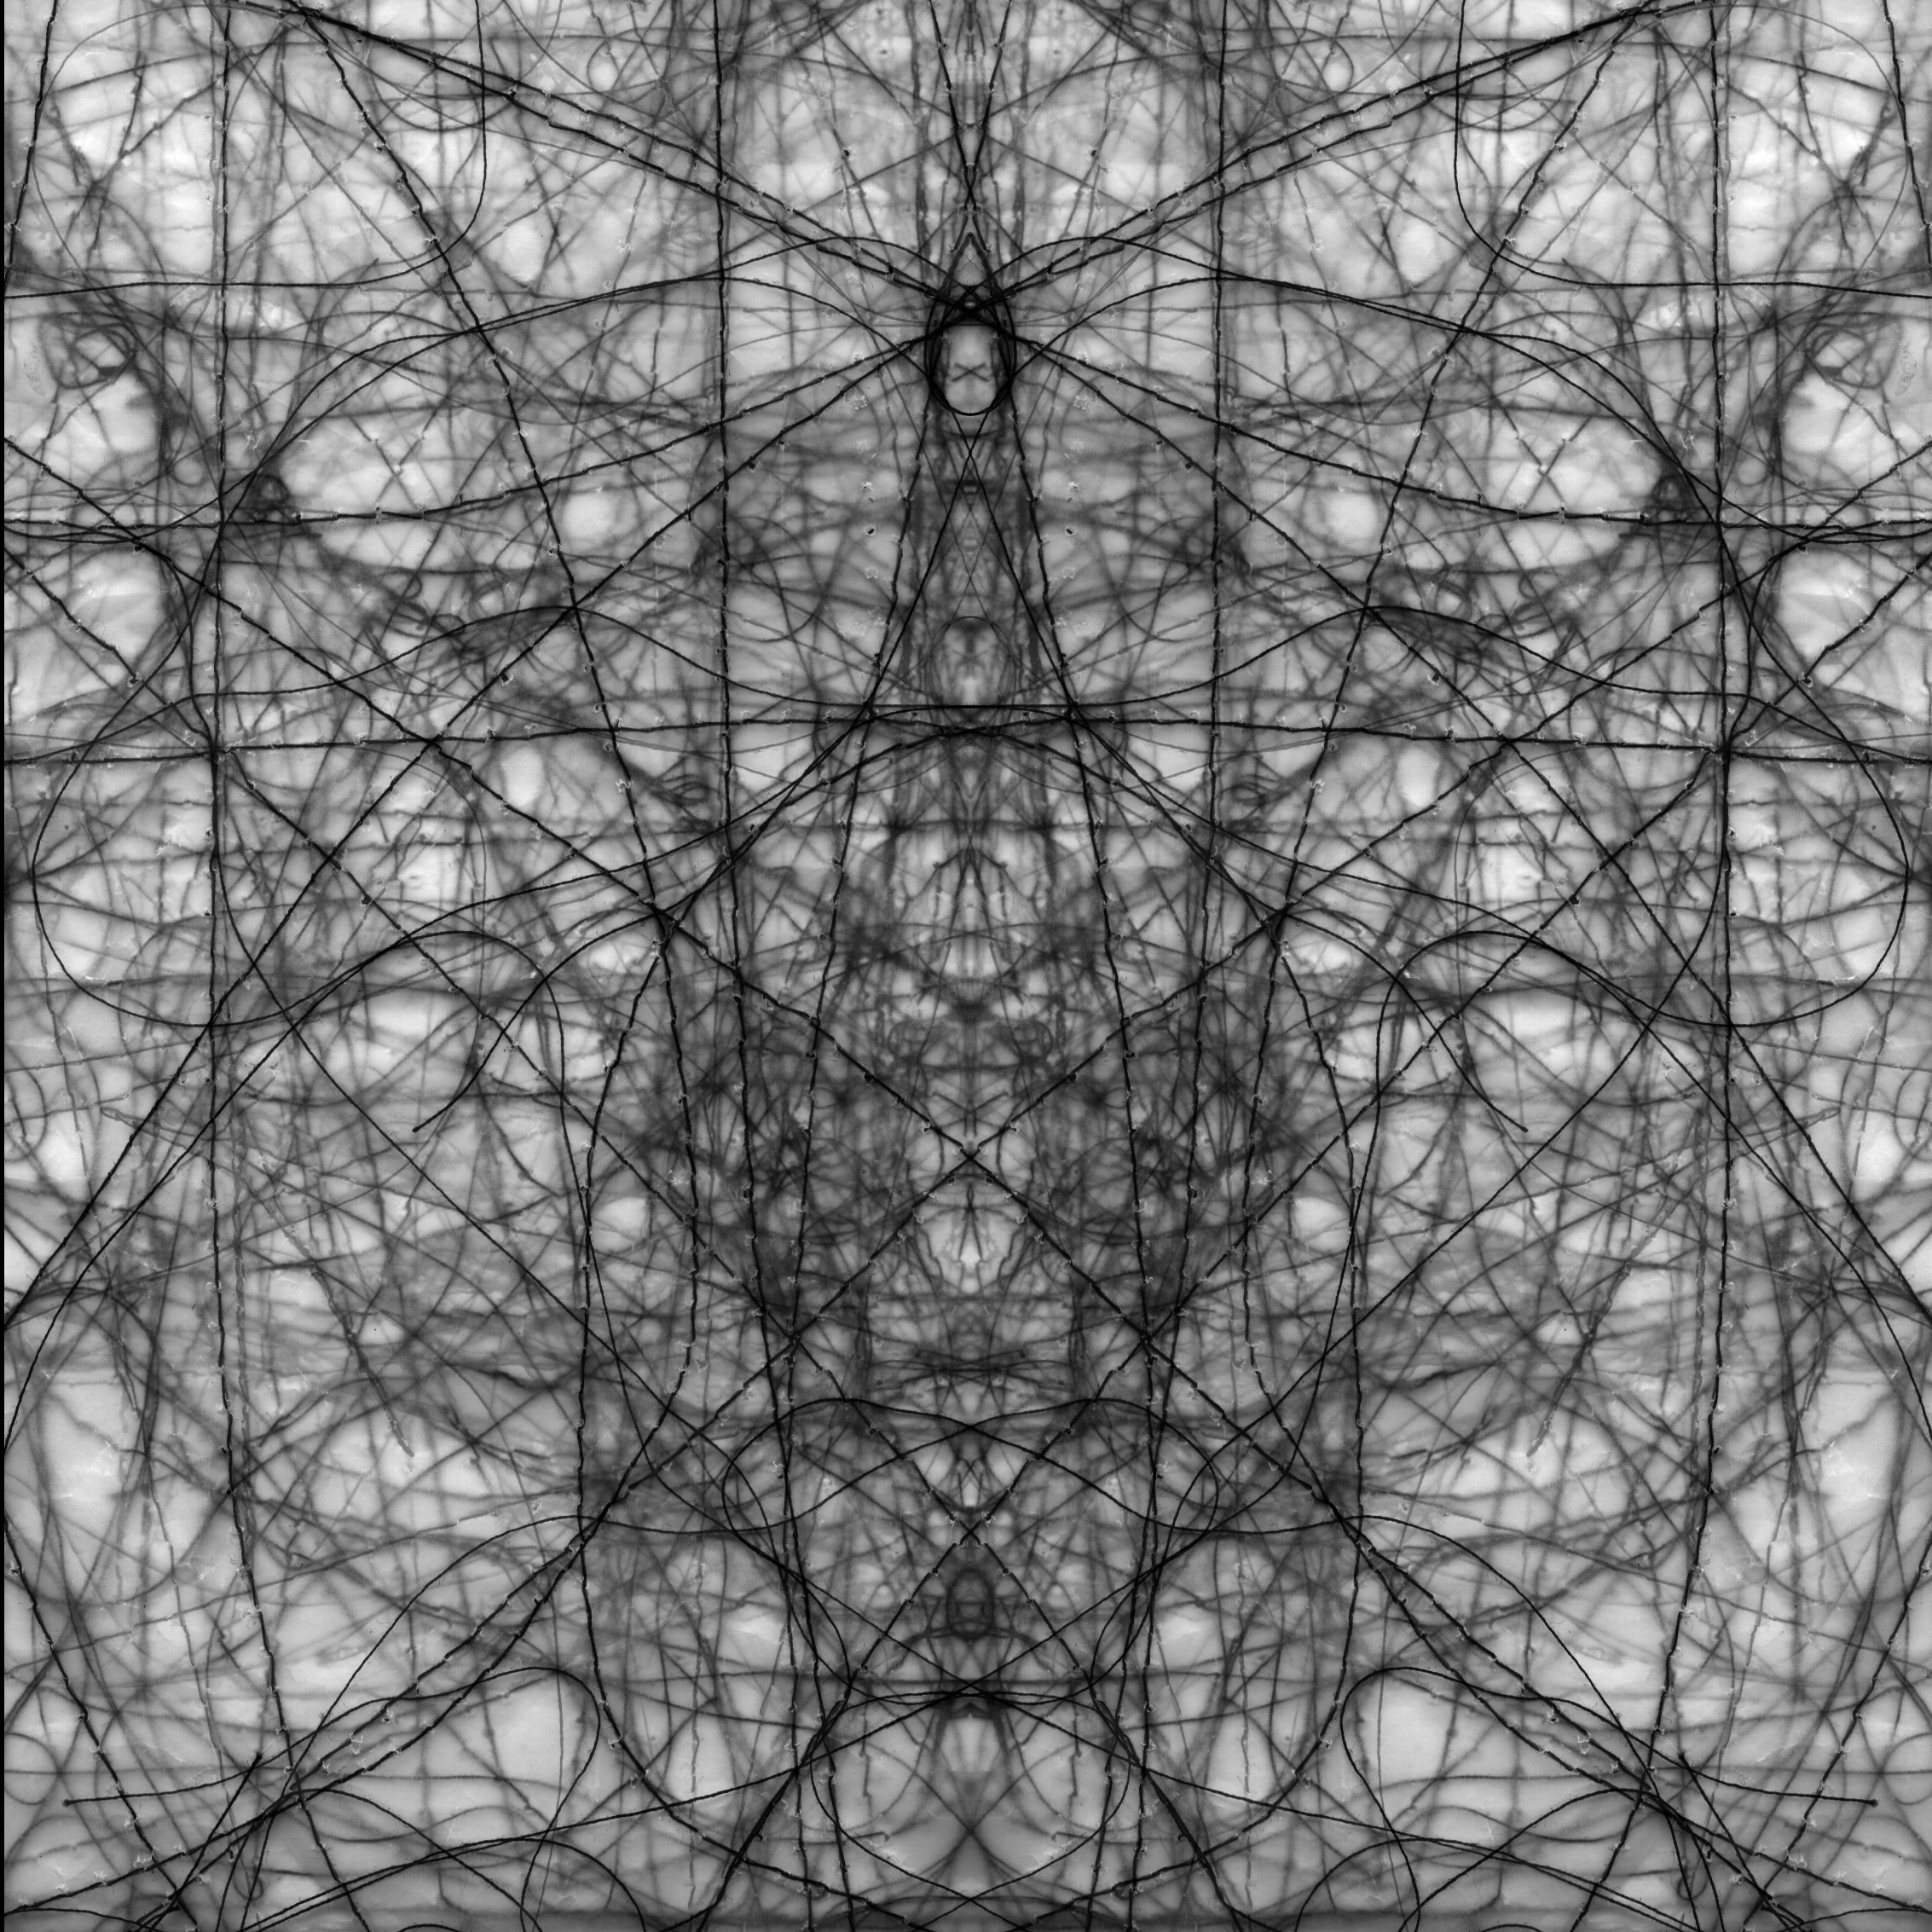 An Ordered Chaos #27 (Void 2), Archival Inkjet Print, 20 by 20 inches, 2016